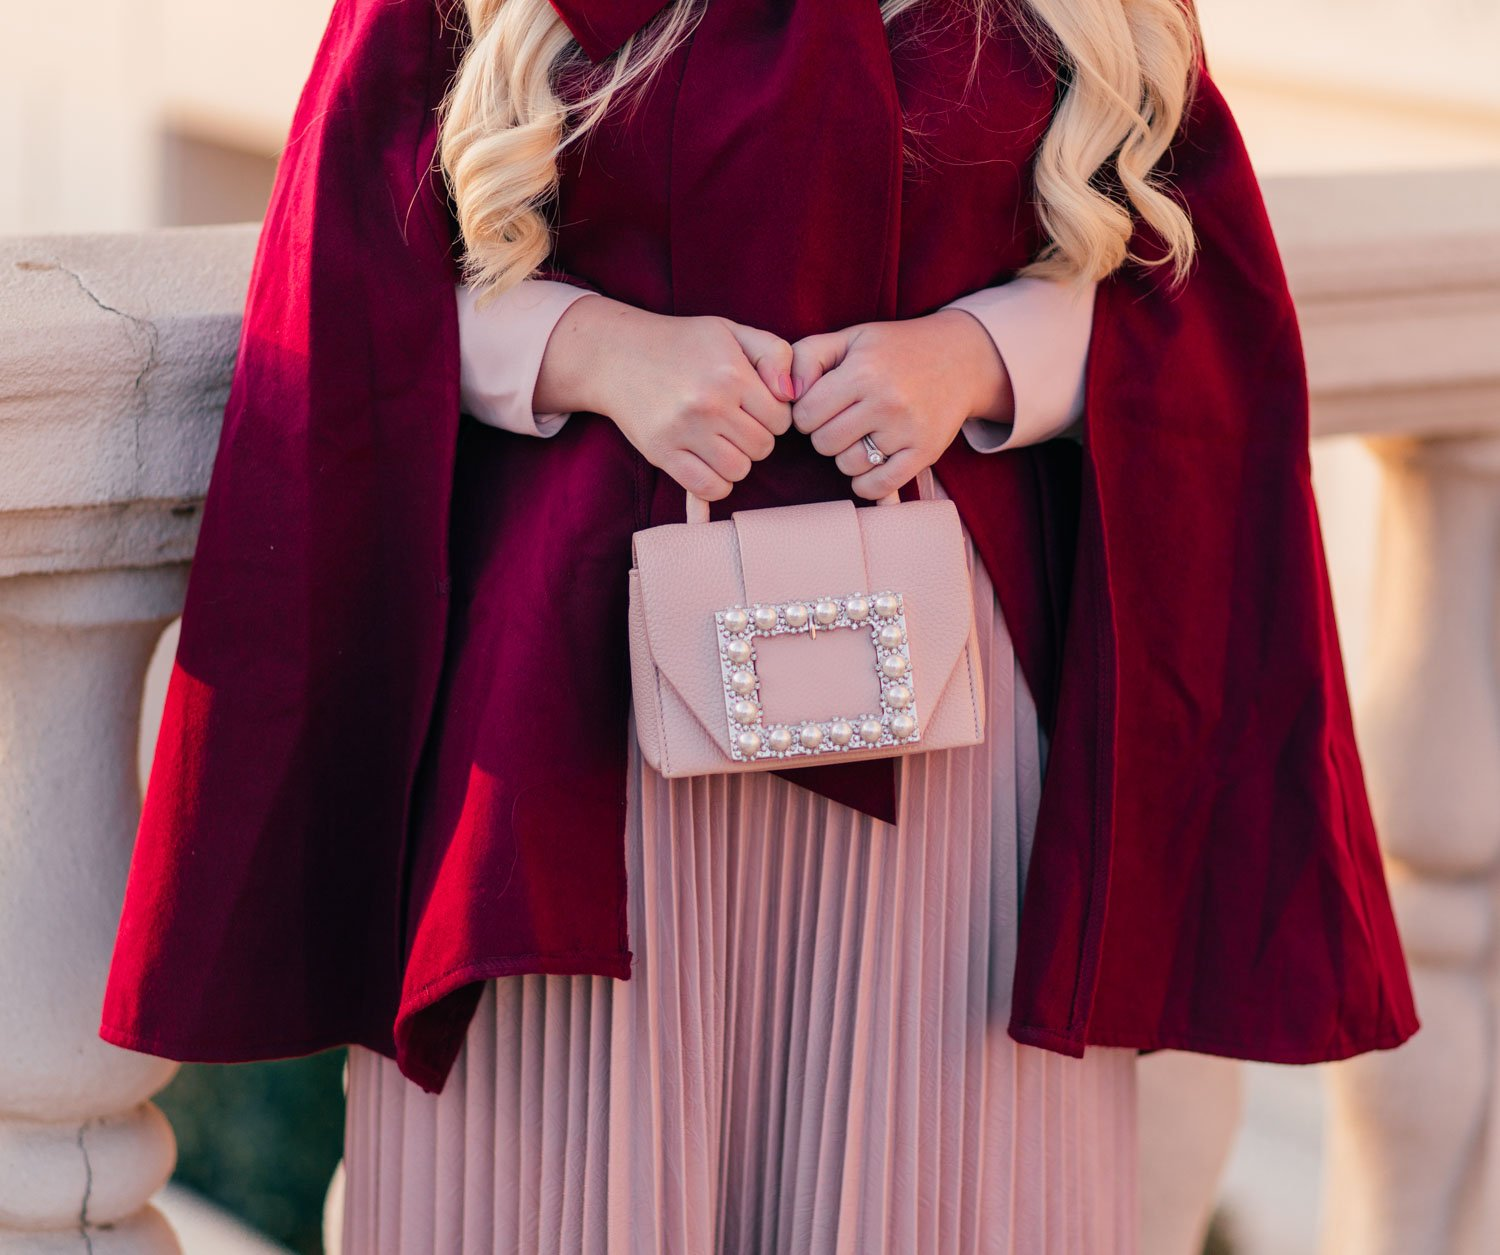 Elizabeth Hugen of Lizzie in Lace shares how to style a cape for fall along with her pink Kate spade handbag!